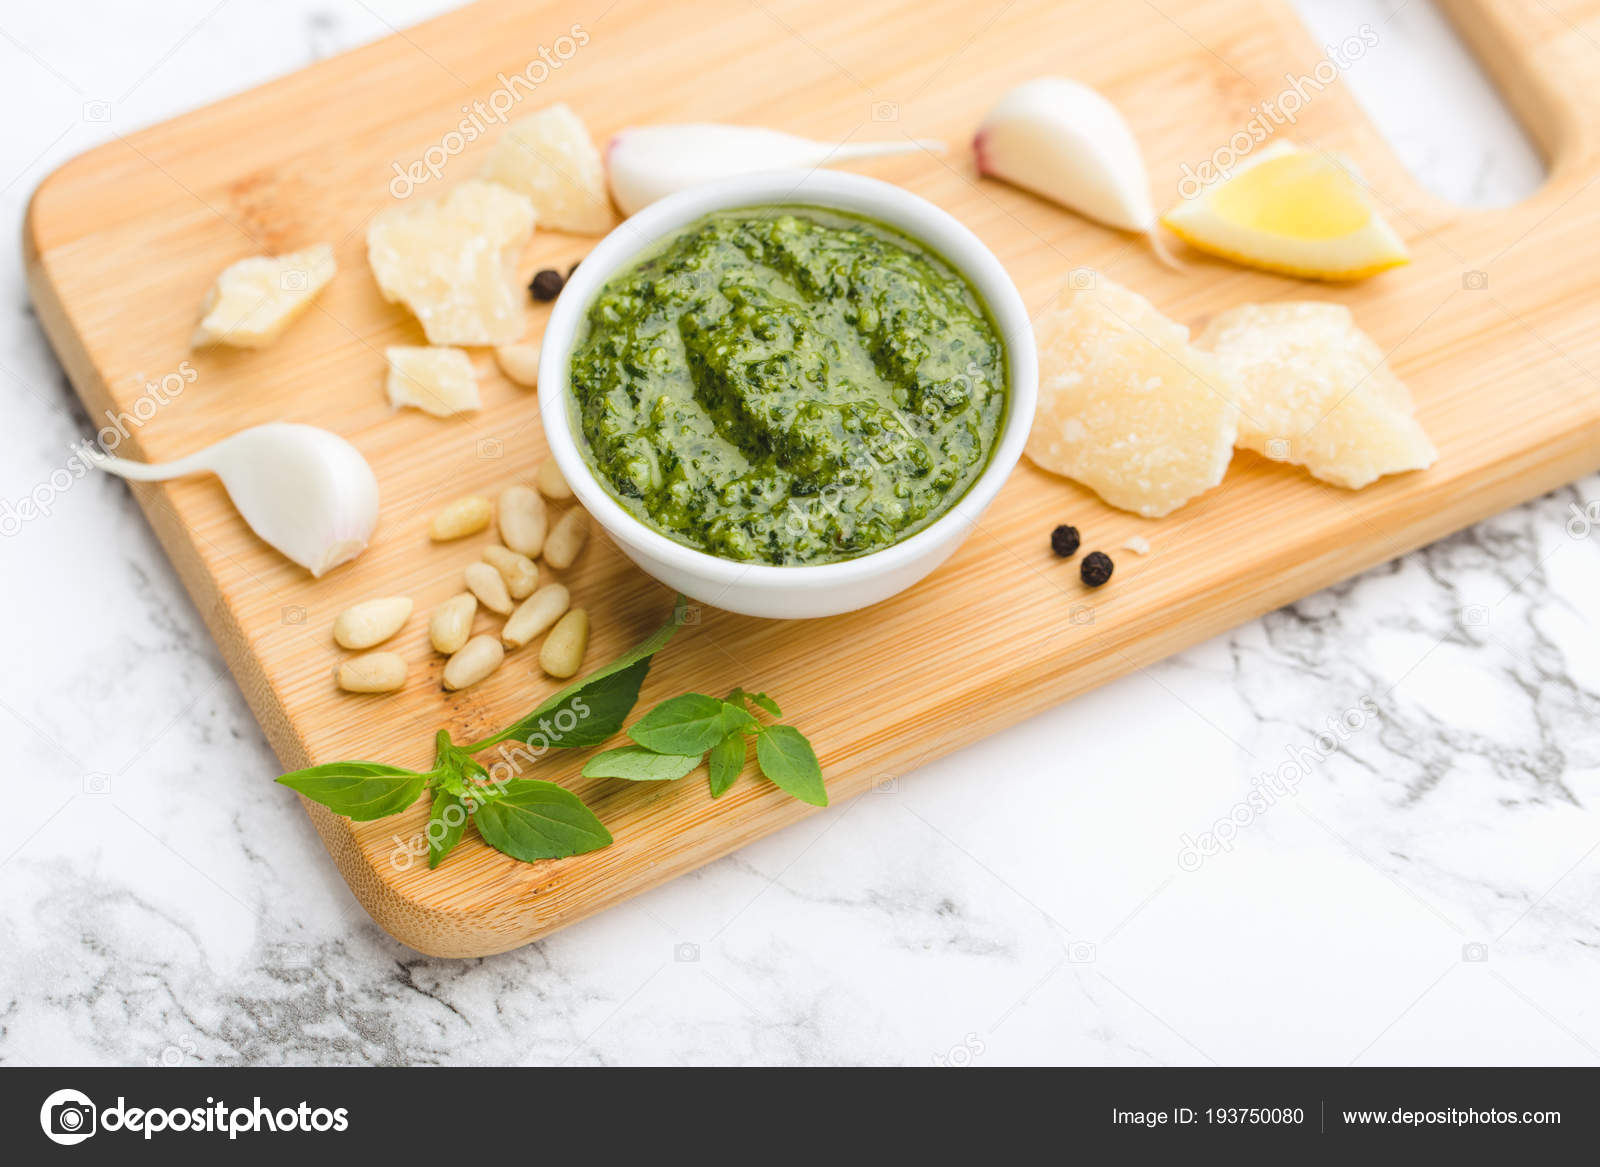 On A Marble Table Wooden Cutting Board In Round Cup Green Pesto Sauce